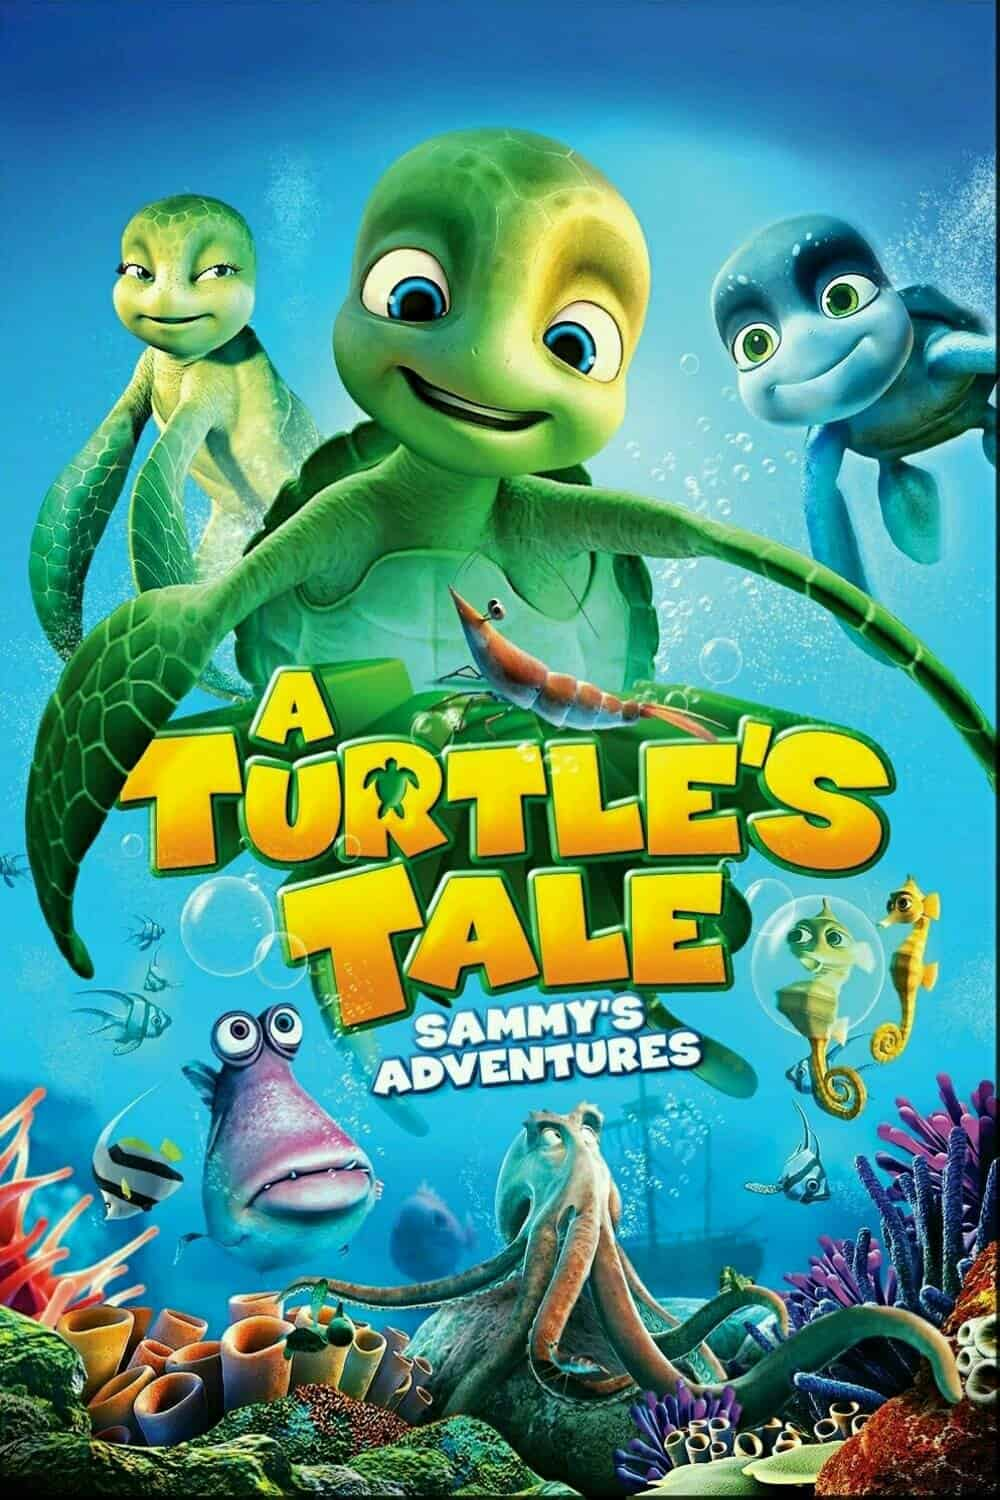 A Turtle's Tale: Sammy's Adventures, 2010